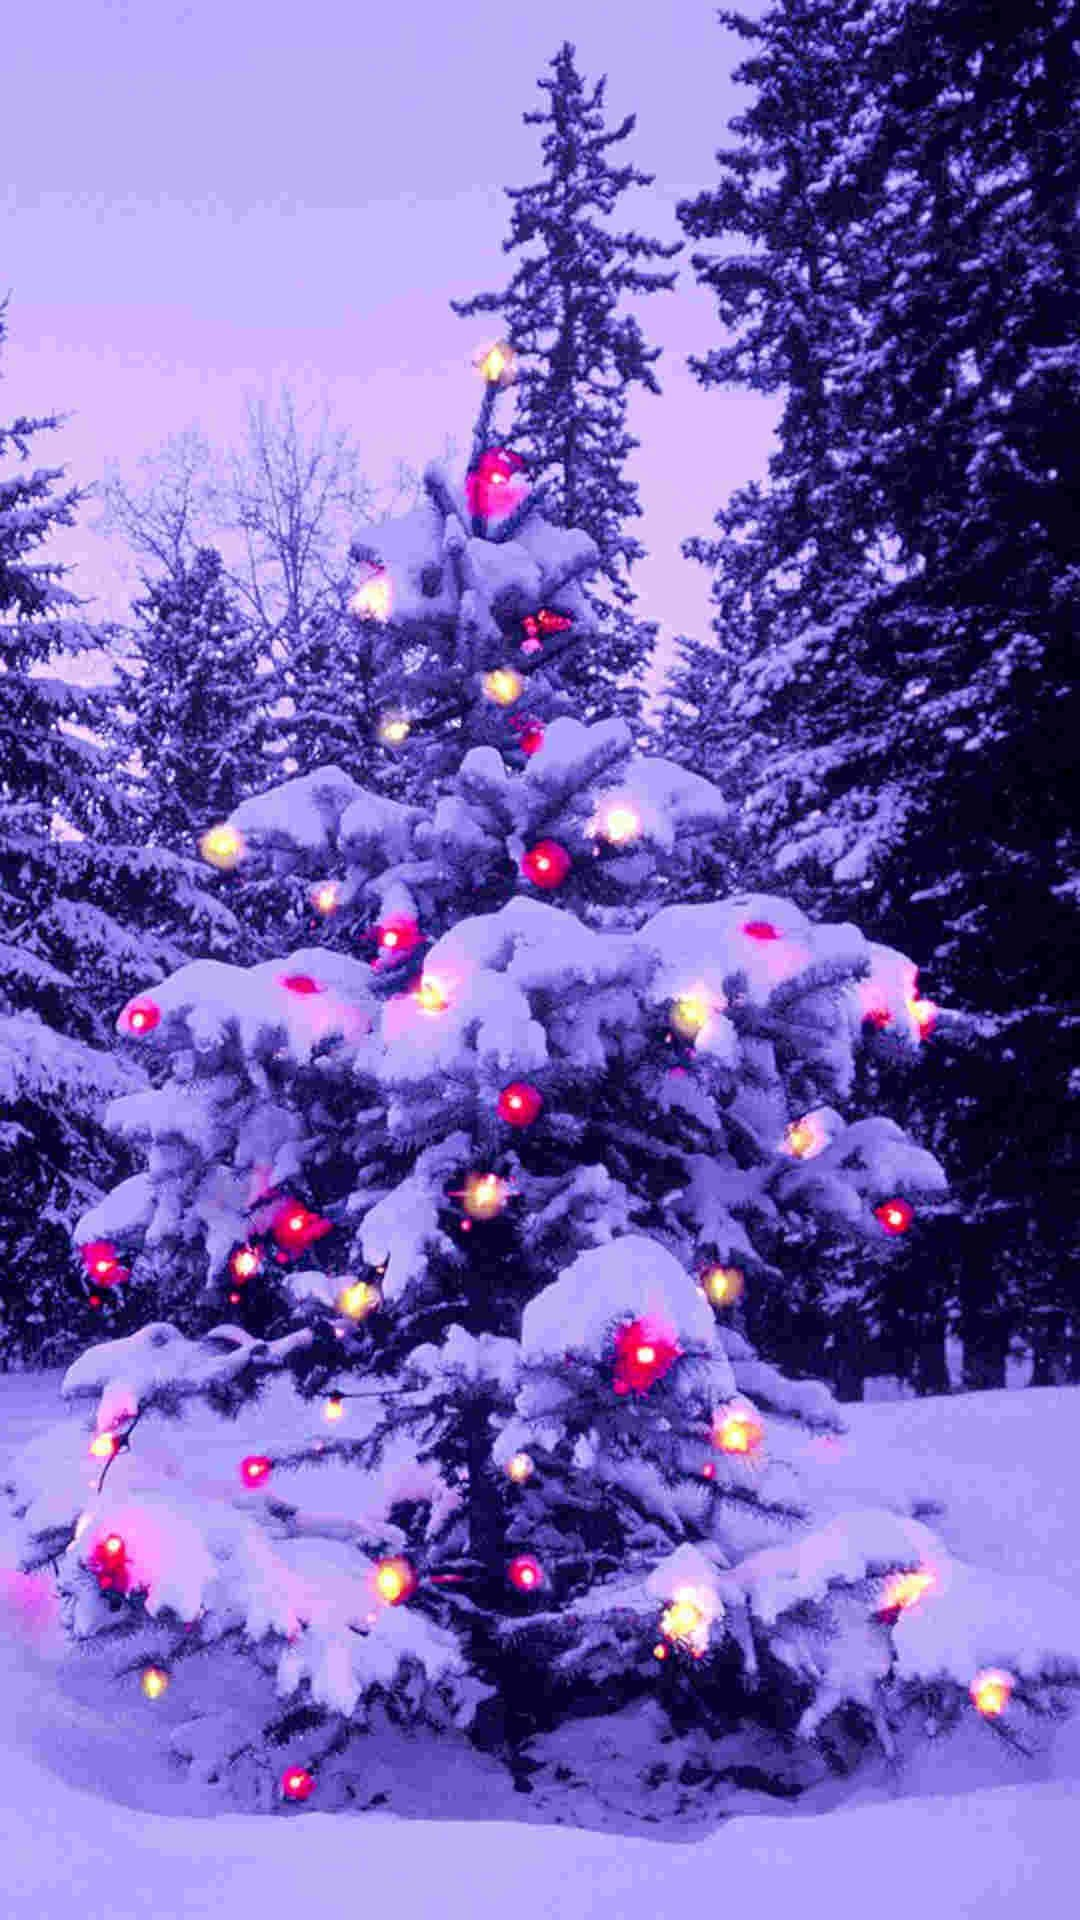 1080x1920 pink light 2014 Christmas tree iPhone 6 plus wallpaper - nature #2014 # Christmas #